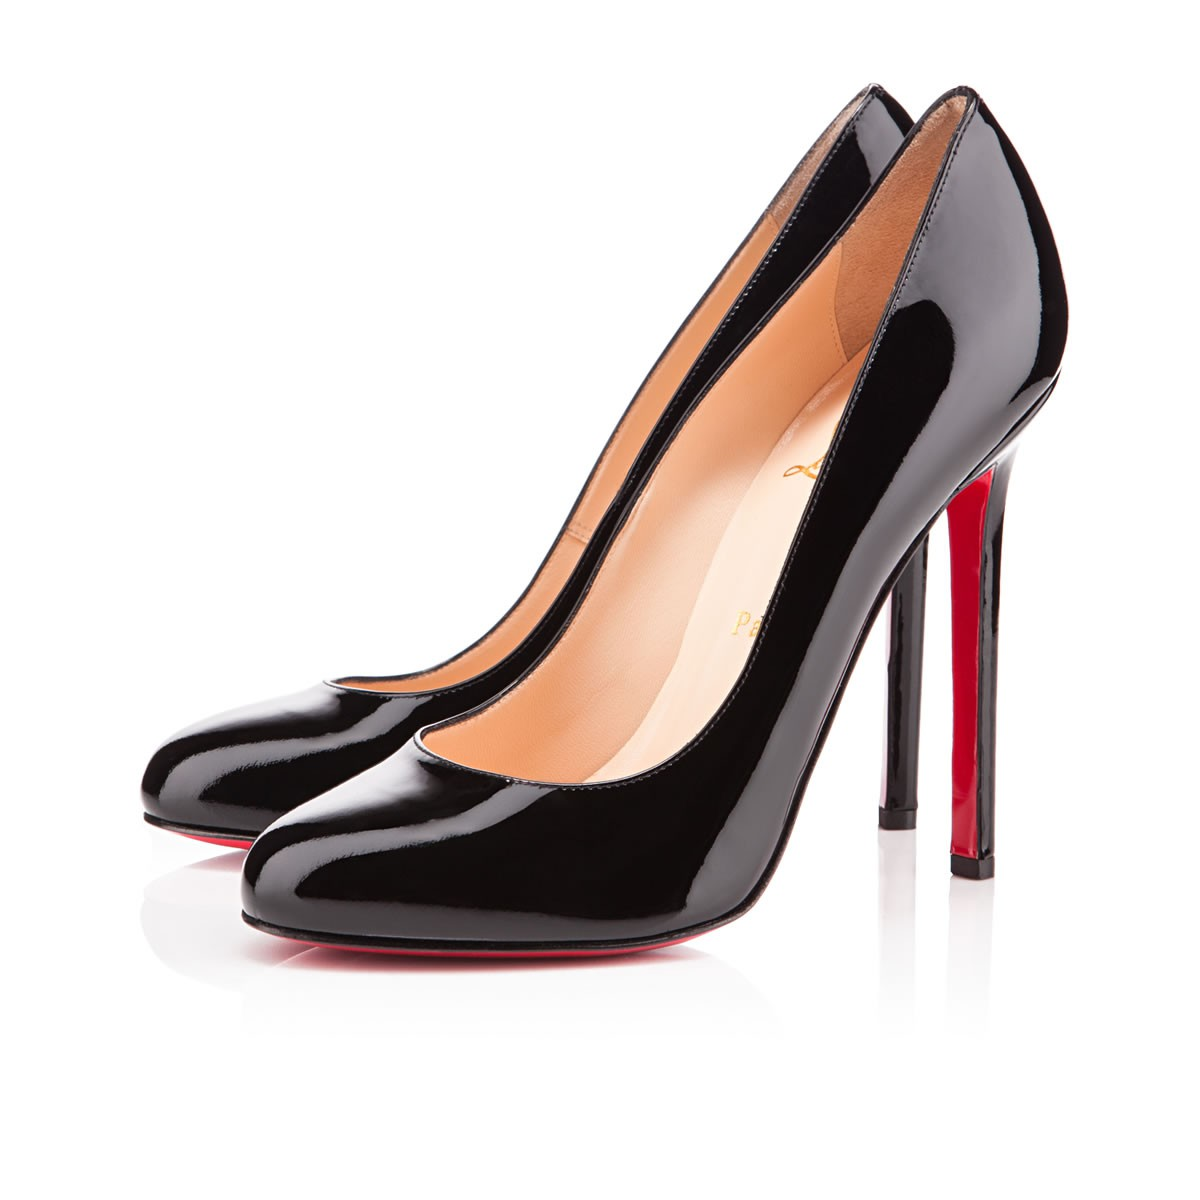 Lyst - Christian Louboutin Lady Lynch in Black 31bf80f09eeb